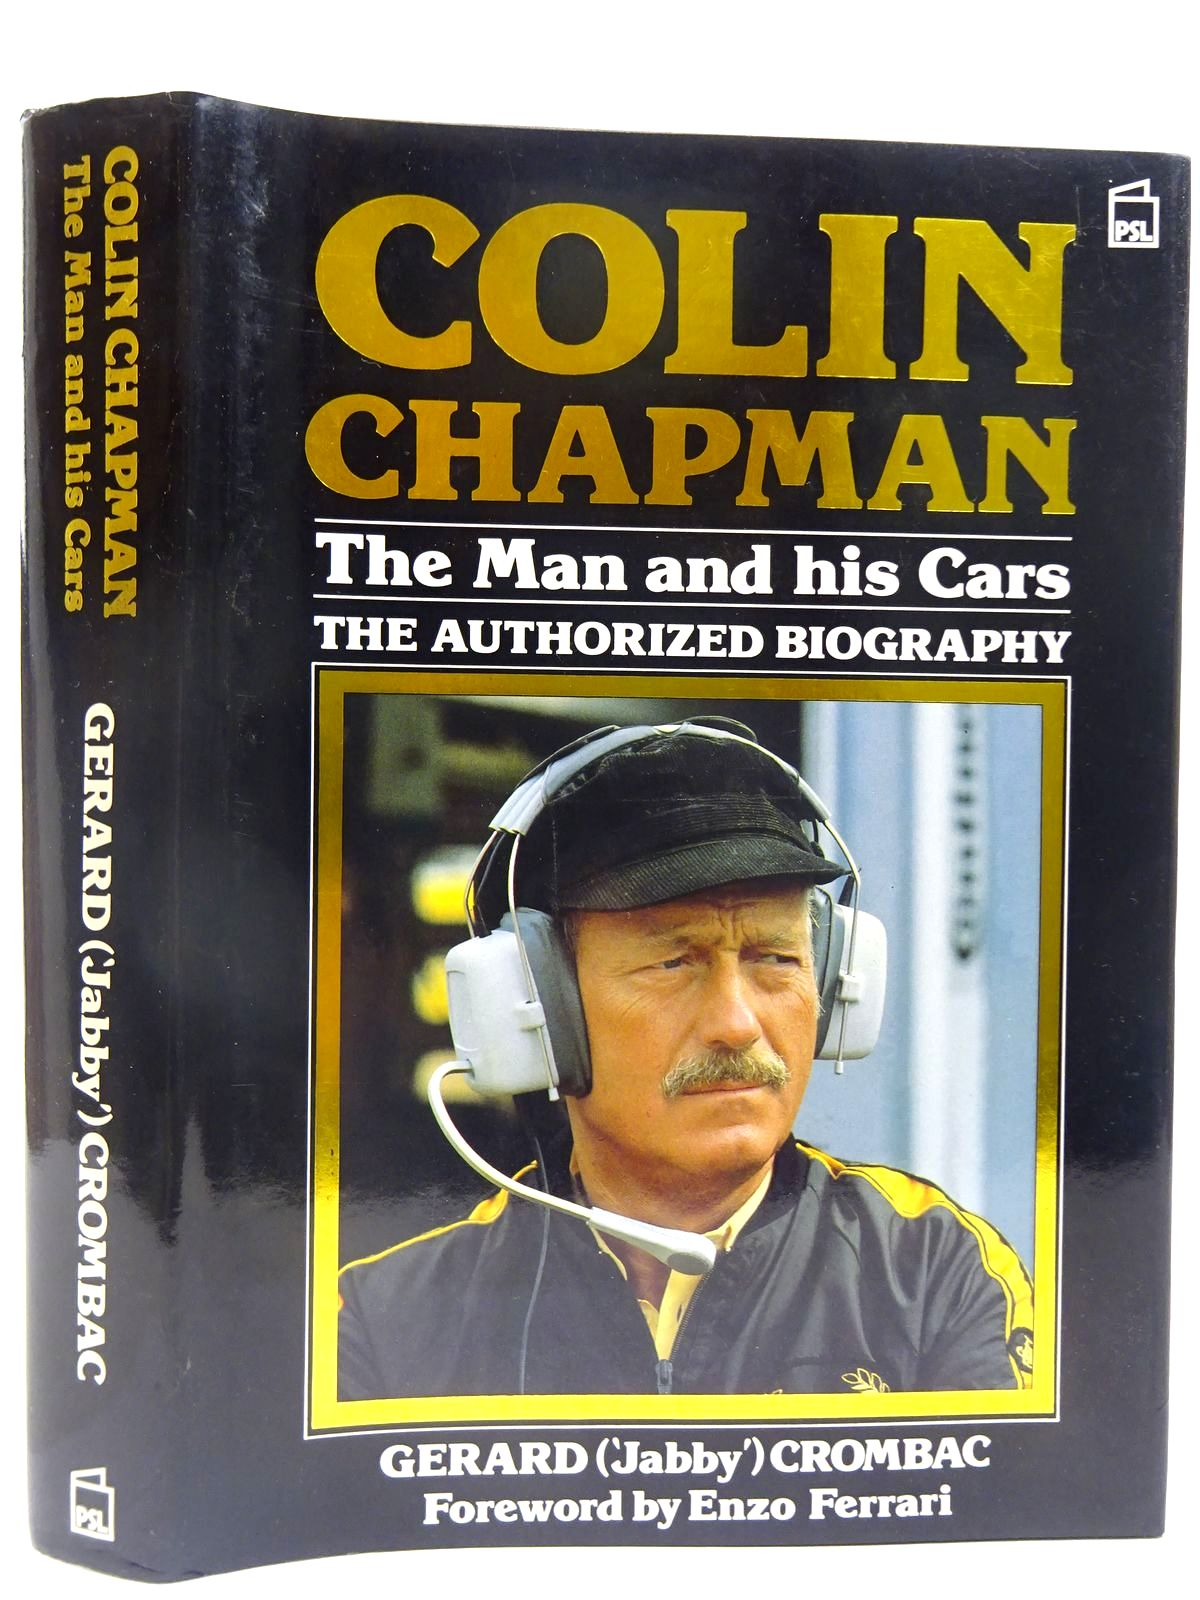 Photo of COLIN CHAPMAN THE MAN AND HIS CARS written by Crombac, Gerard published by Patrick Stephens (STOCK CODE: 2128142)  for sale by Stella & Rose's Books